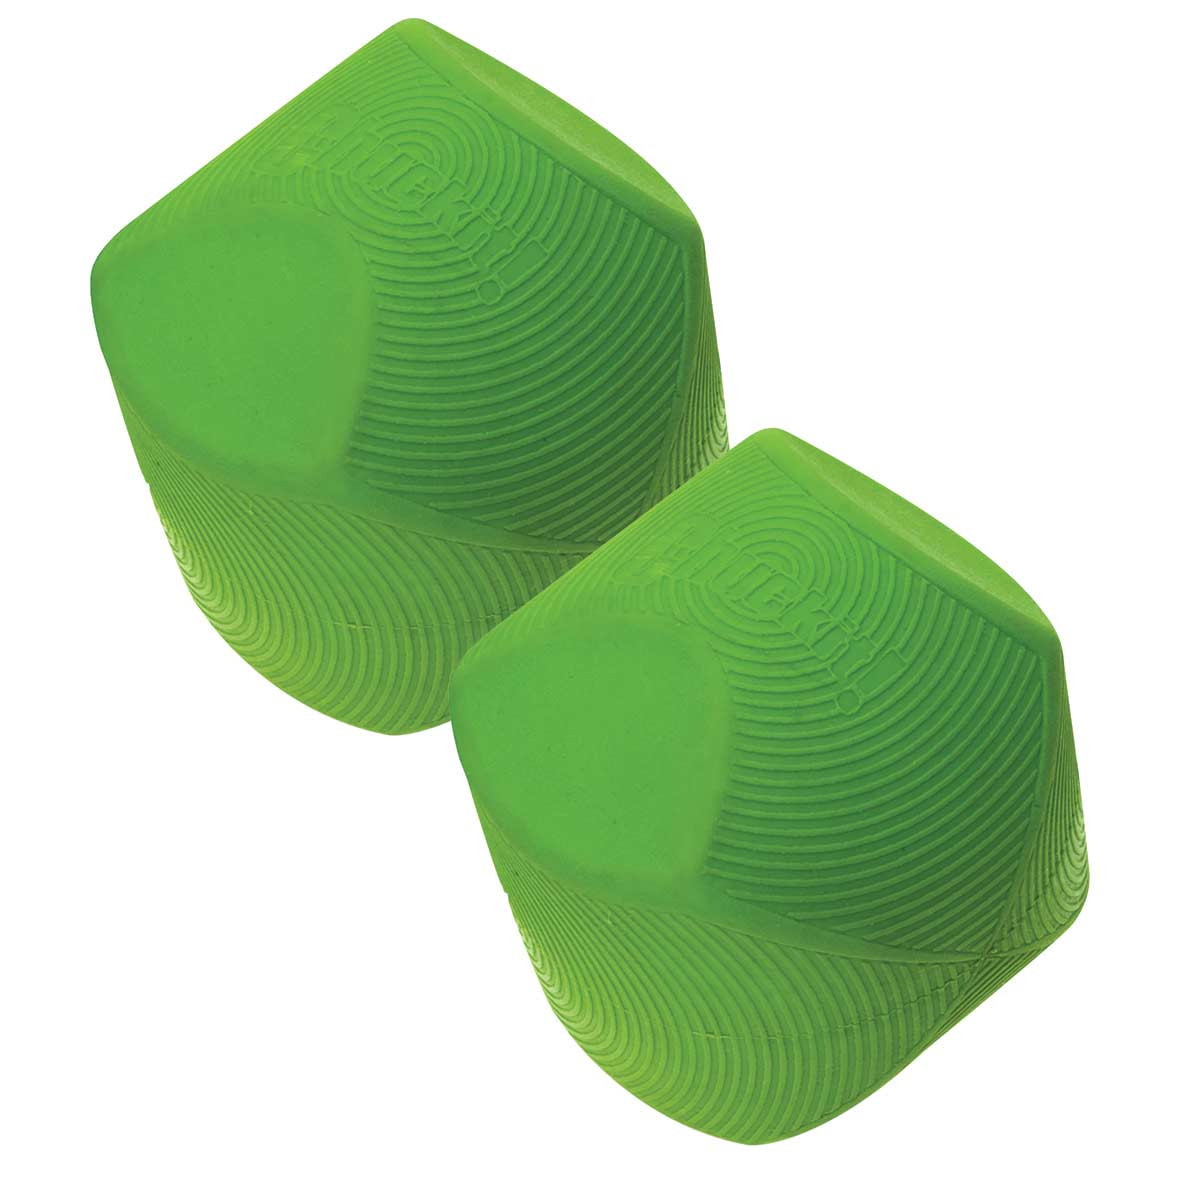 Chuckit! Erratic Ball Small 2 Pack in Packaging